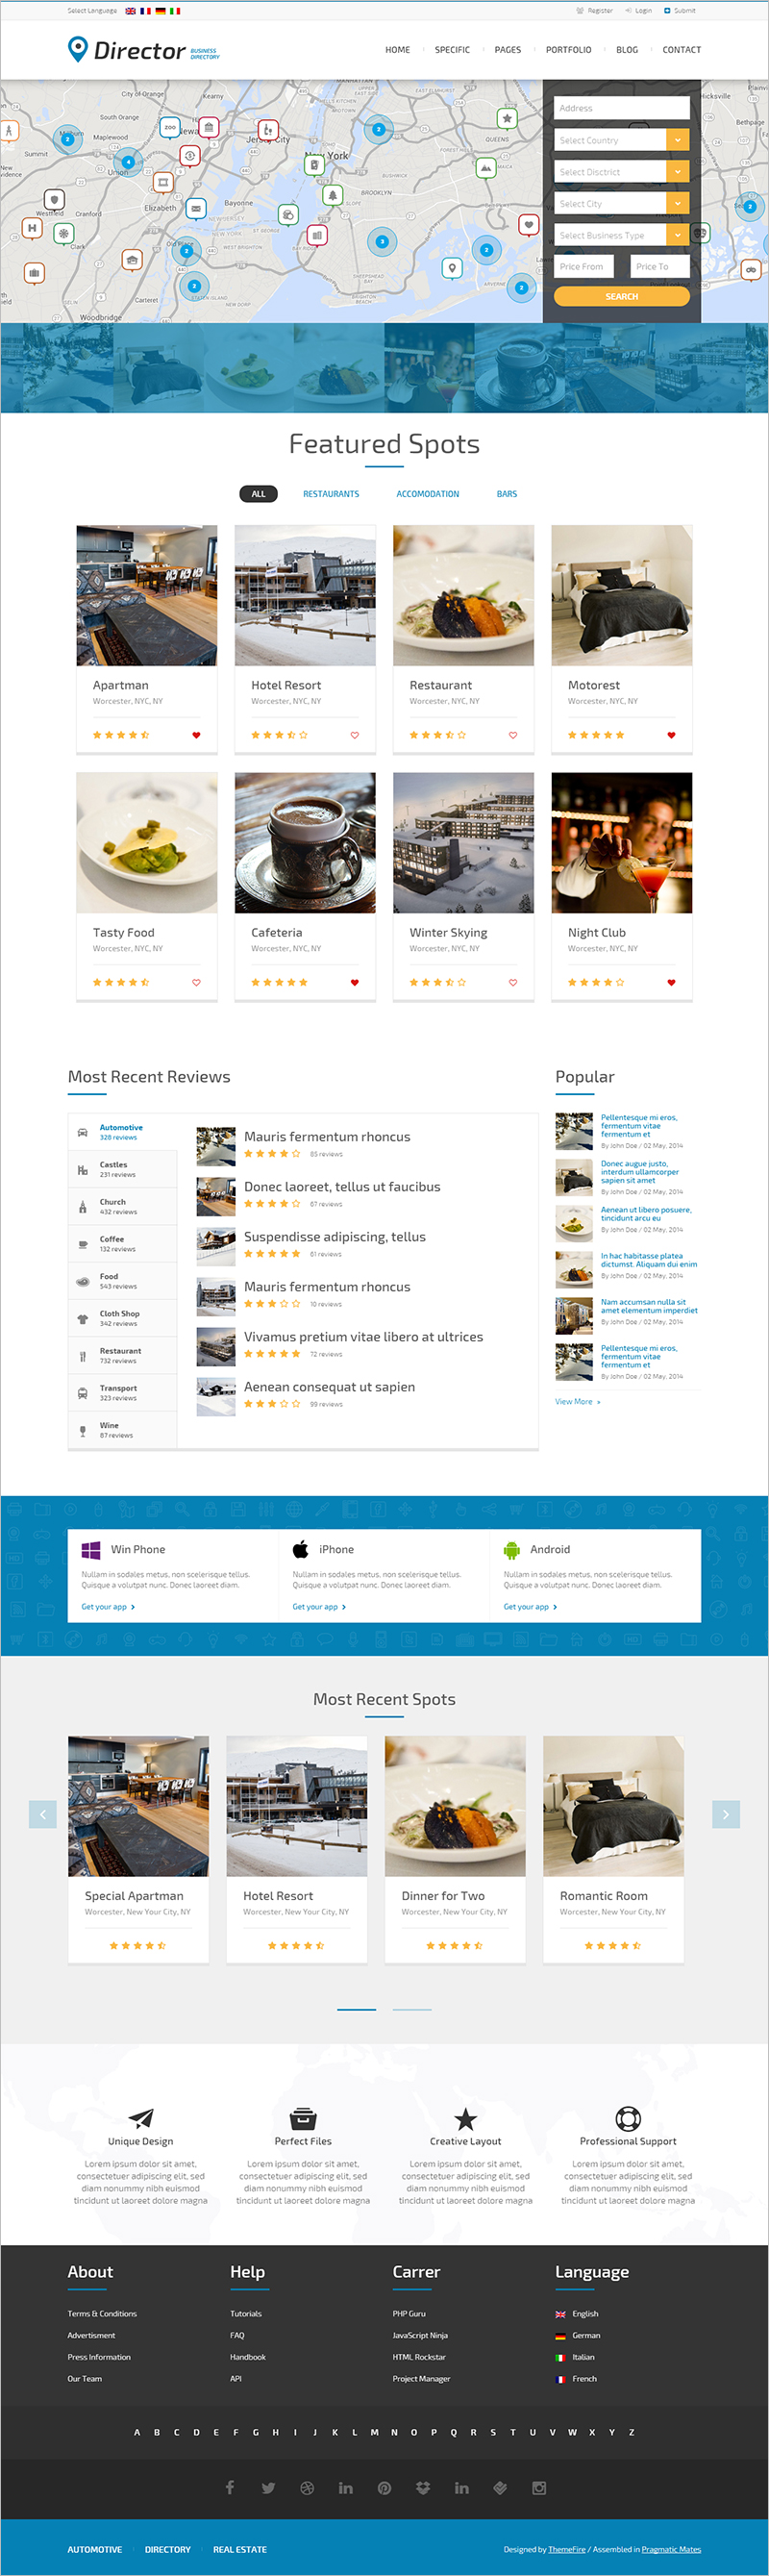 4 php directory templates free premium templates business directory web template carreal estate business wajeb Image collections